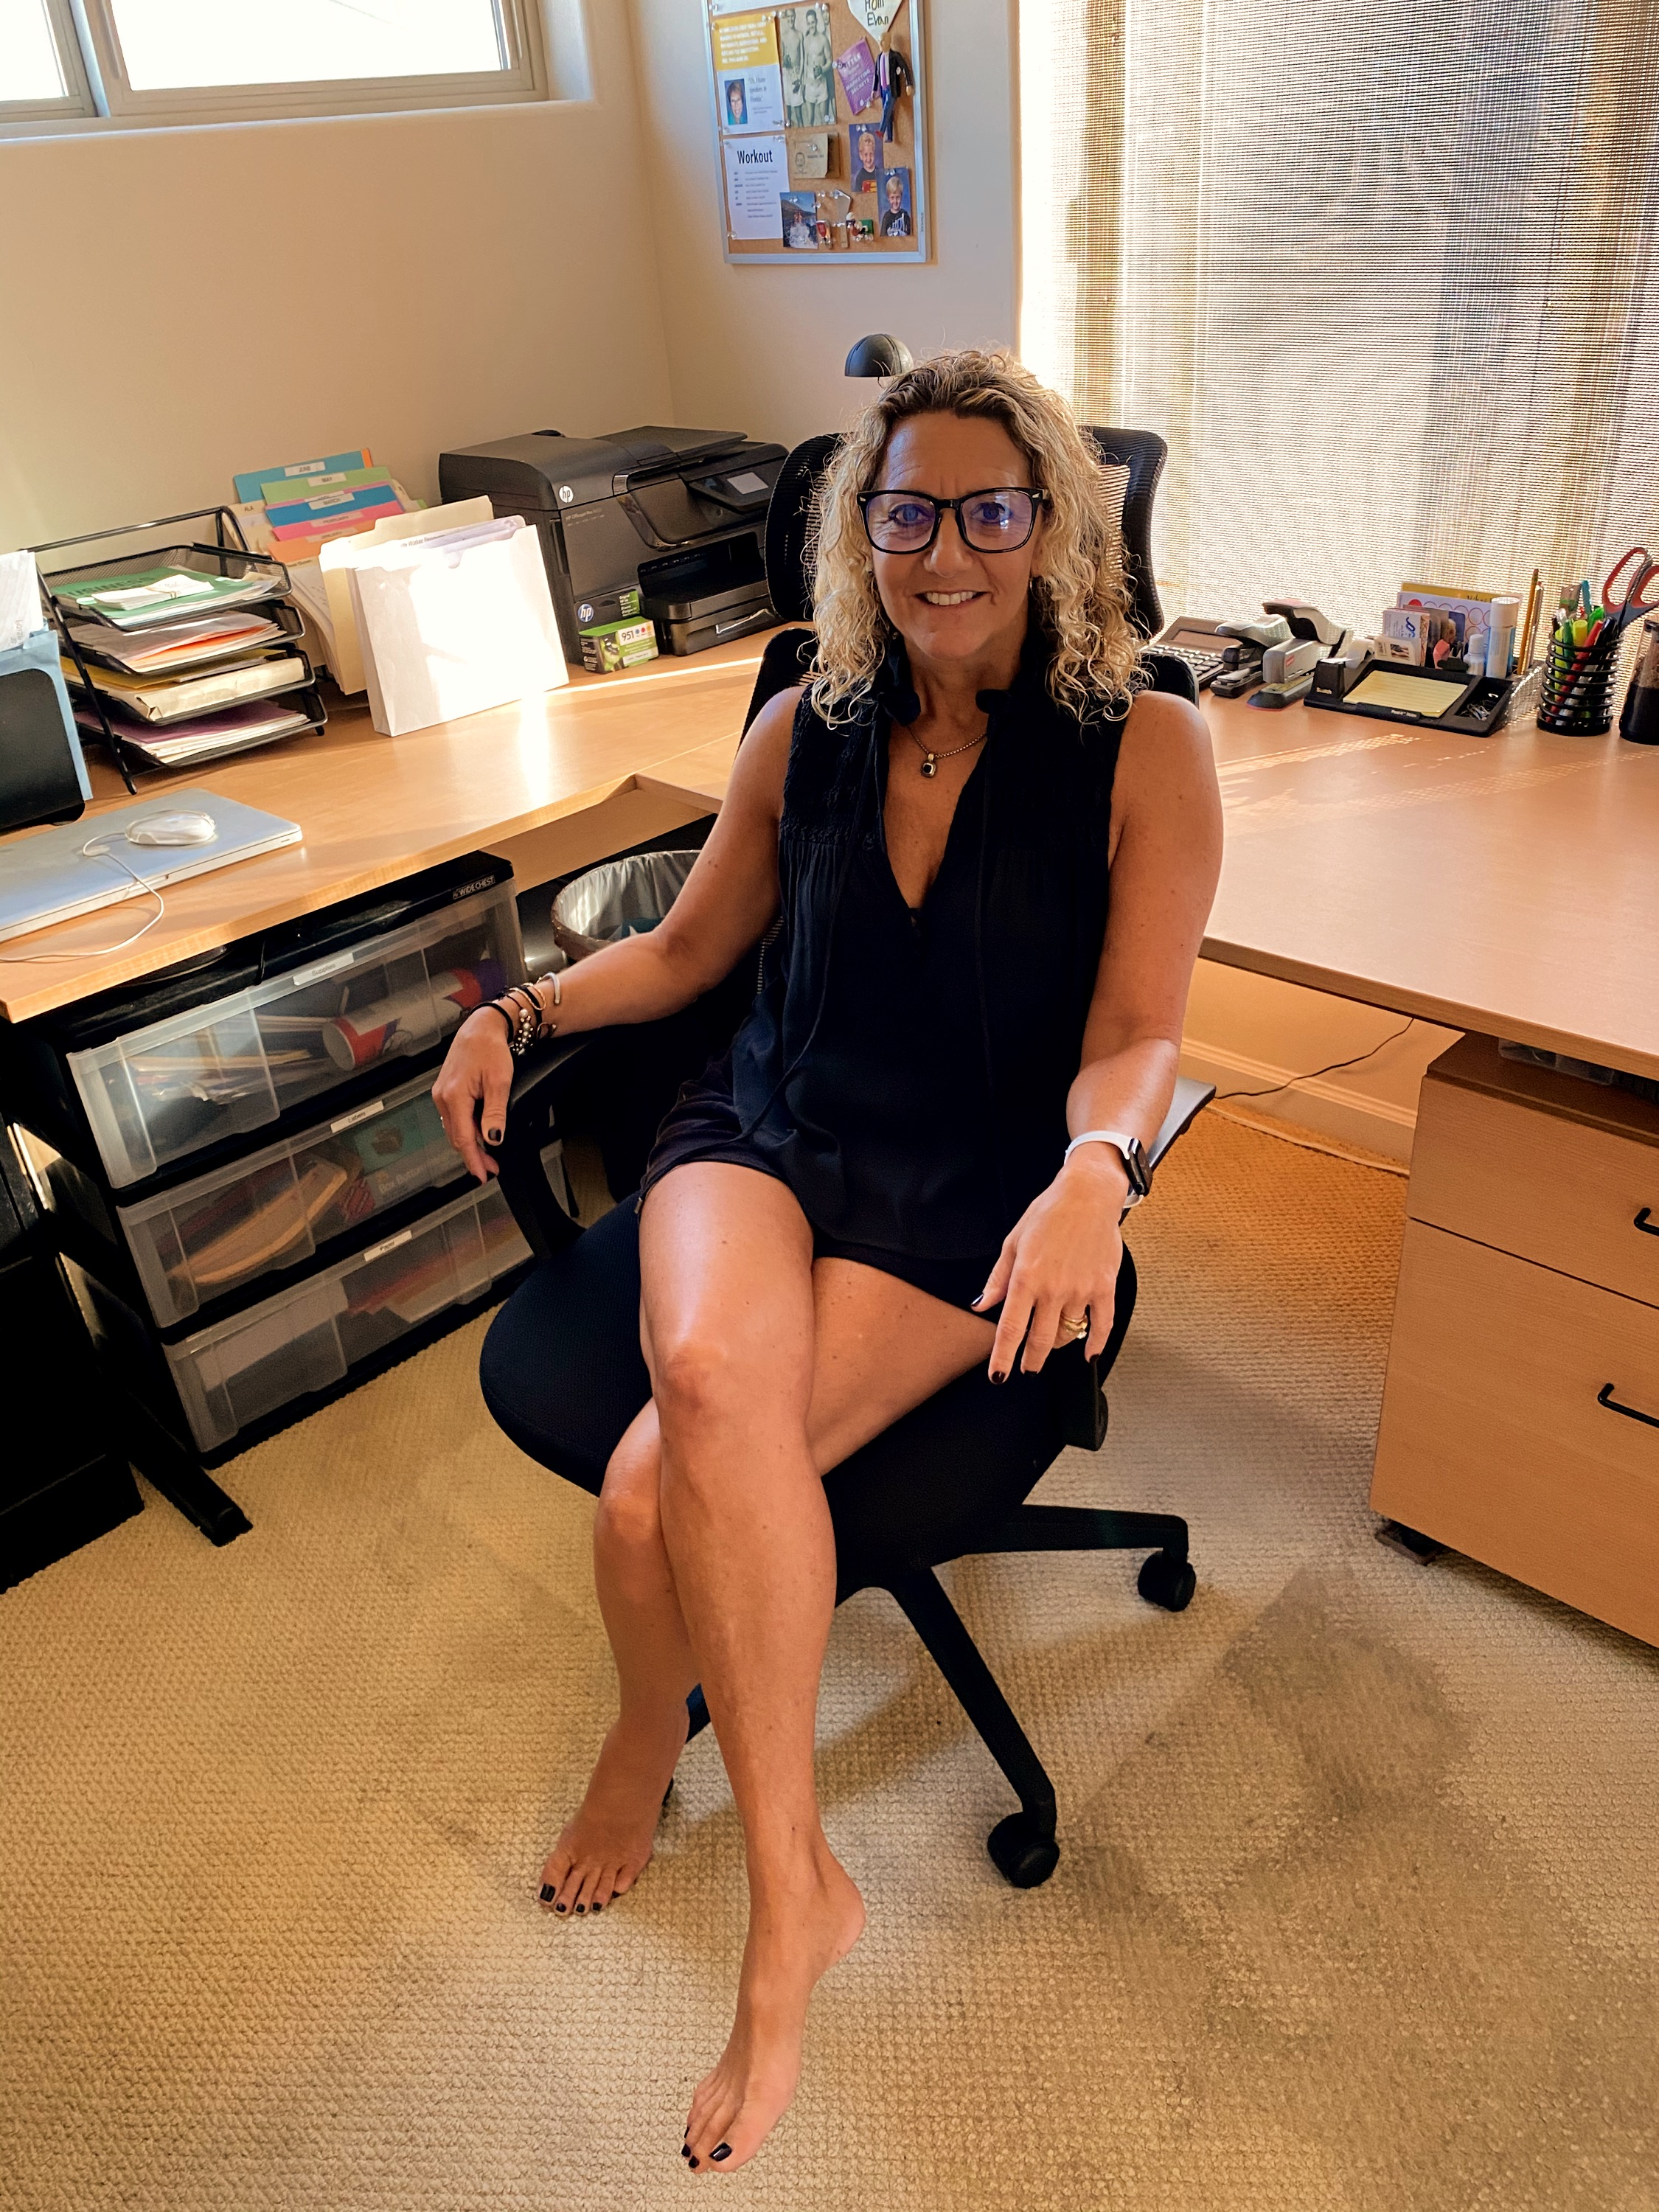 """My Wife in """"My"""" Office Chair"""